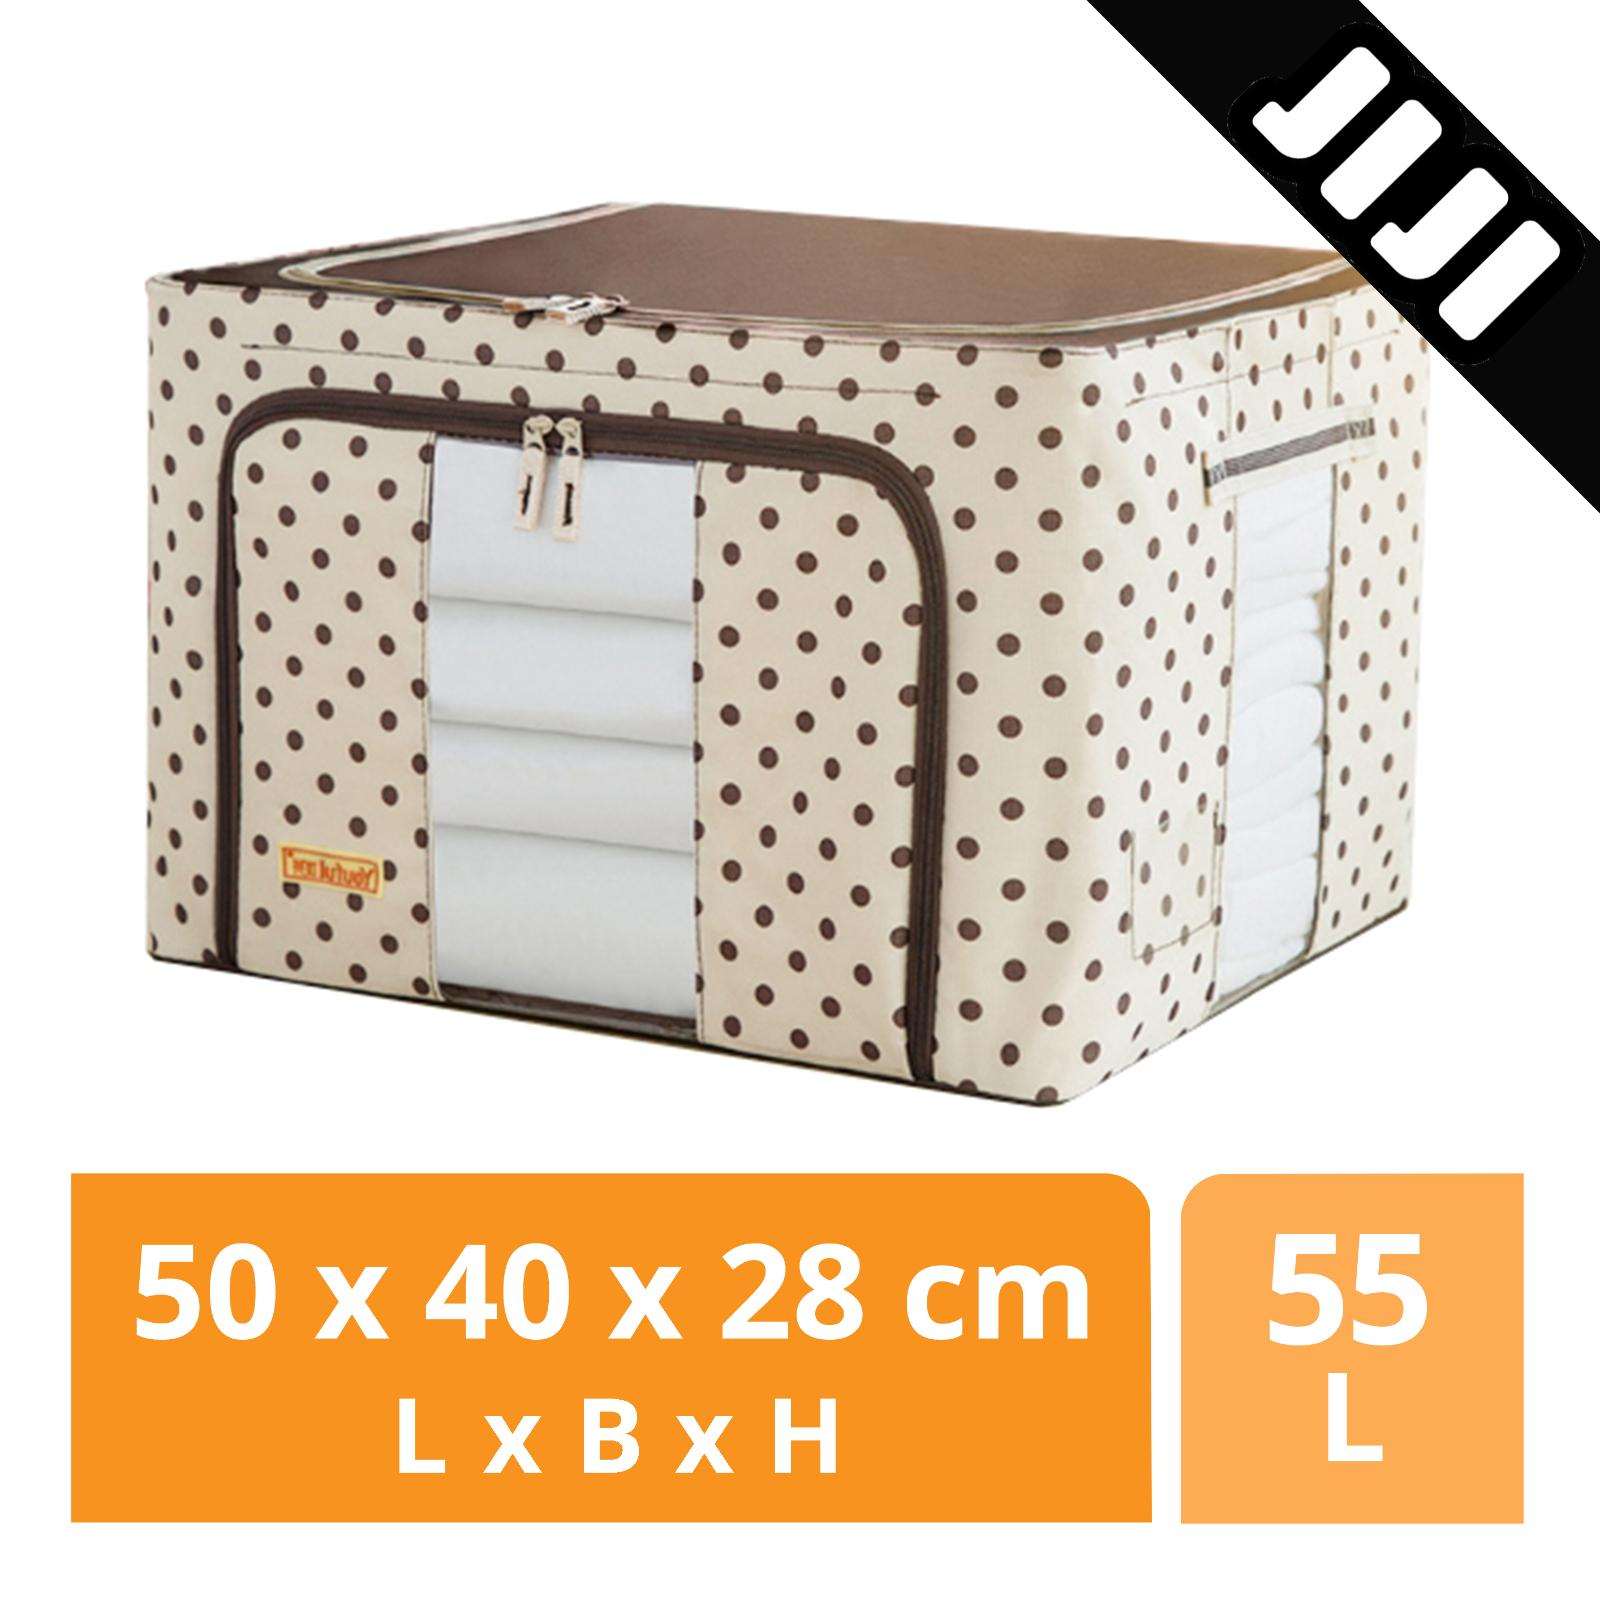 JIJI Oxford Cloth Folding Storage Organizer - Closet Organizers / Drawer Shelf / Space Savers (SG)